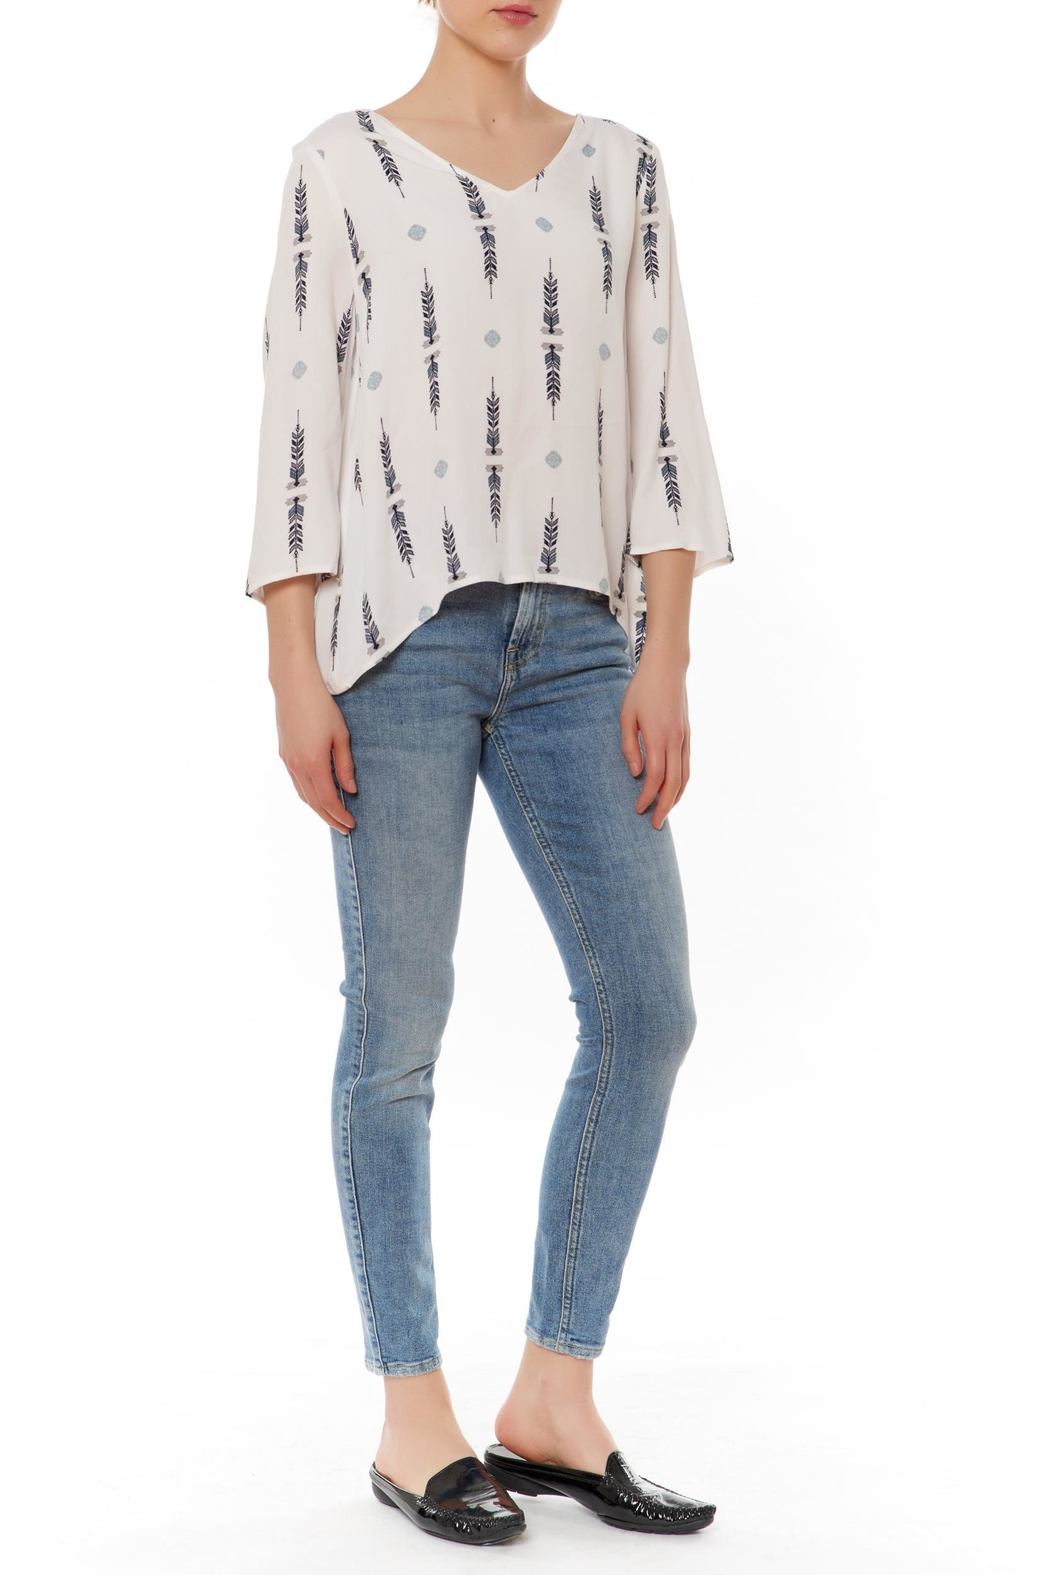 Jack by BB Dakota Puan Lightweight Blouse - Front Cropped Image